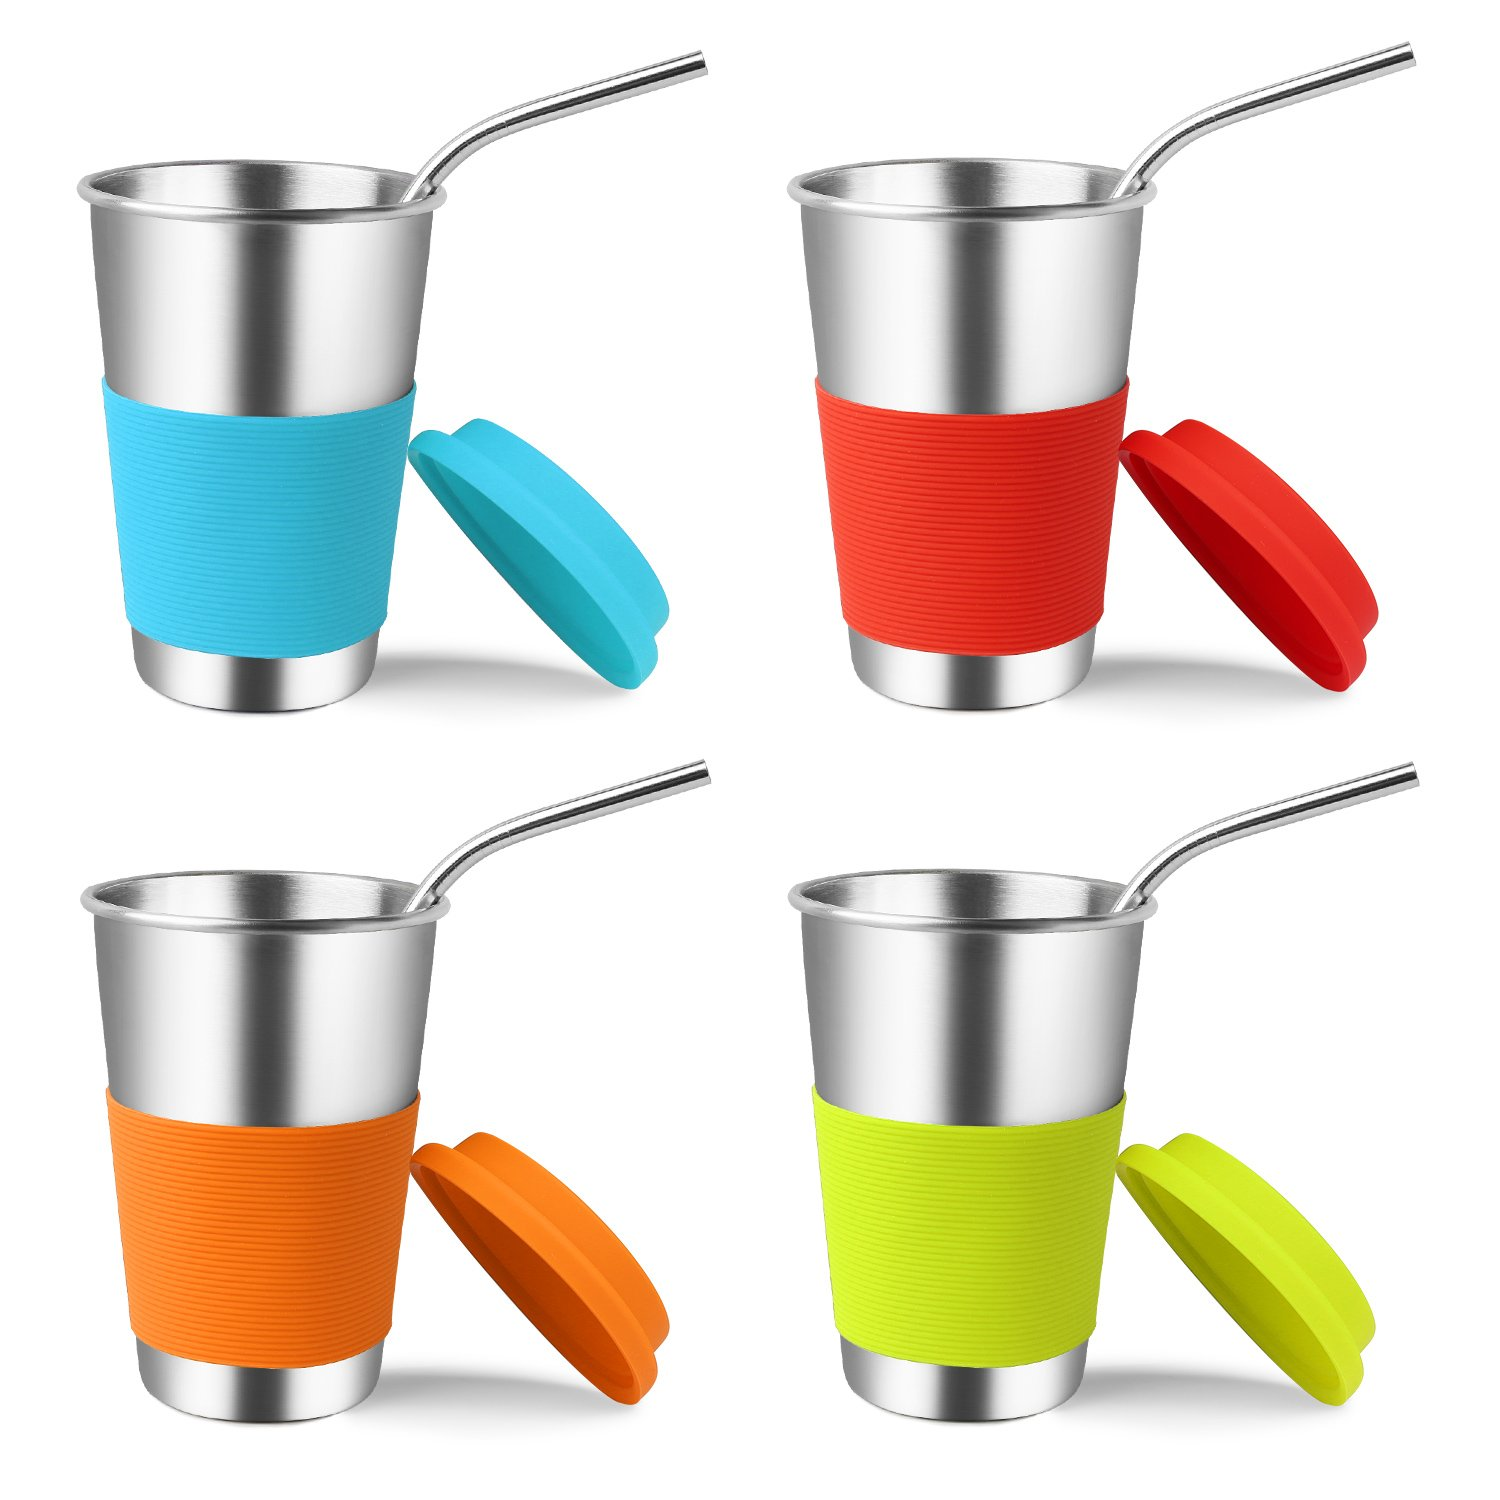 Stainless Steel Cups with Lids and Straws, Kereda 4 Pack 16 oz. Drinking Tumblers Eco-Friendly BPA-Free with Brush for Adults, Kids and Toddlers by KEREDA